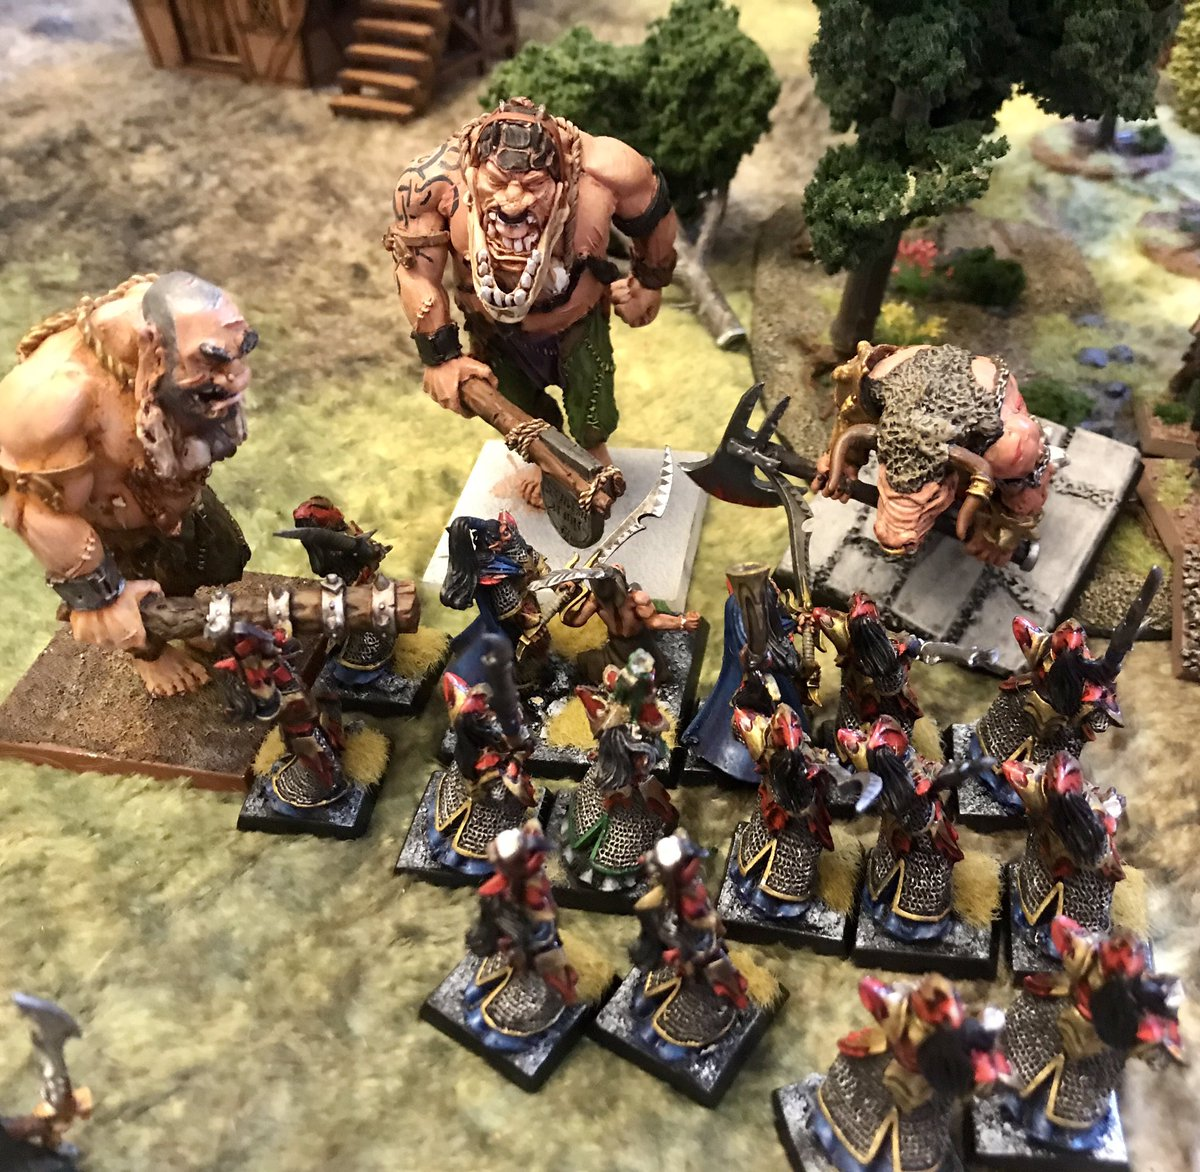 Today is #Warhammerfantasybattles Saturday with my #beastmen facing off against #darkelves. Managed a win - the Bestigors did a great job and the Doombull mounted on a flying carpet was spectacular! #whfb #oldhammer https://t.co/JJt36nzCAd